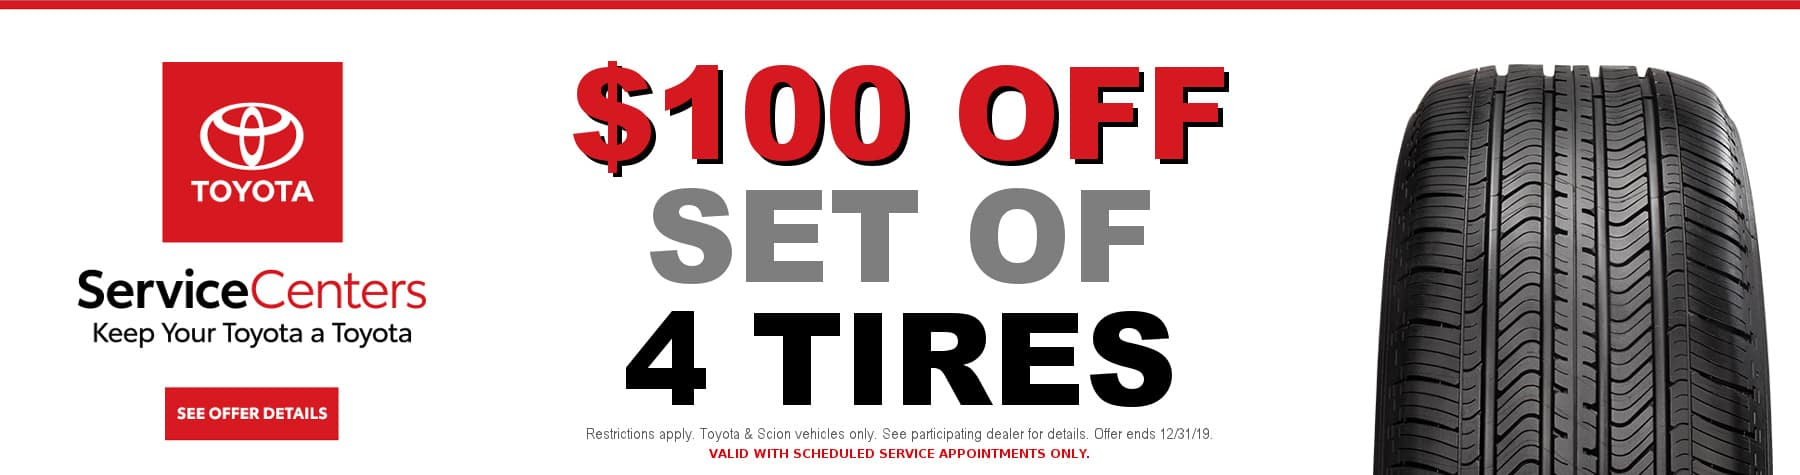 Toyota-Service-Specials-Tires-Price-Match-1-1-20